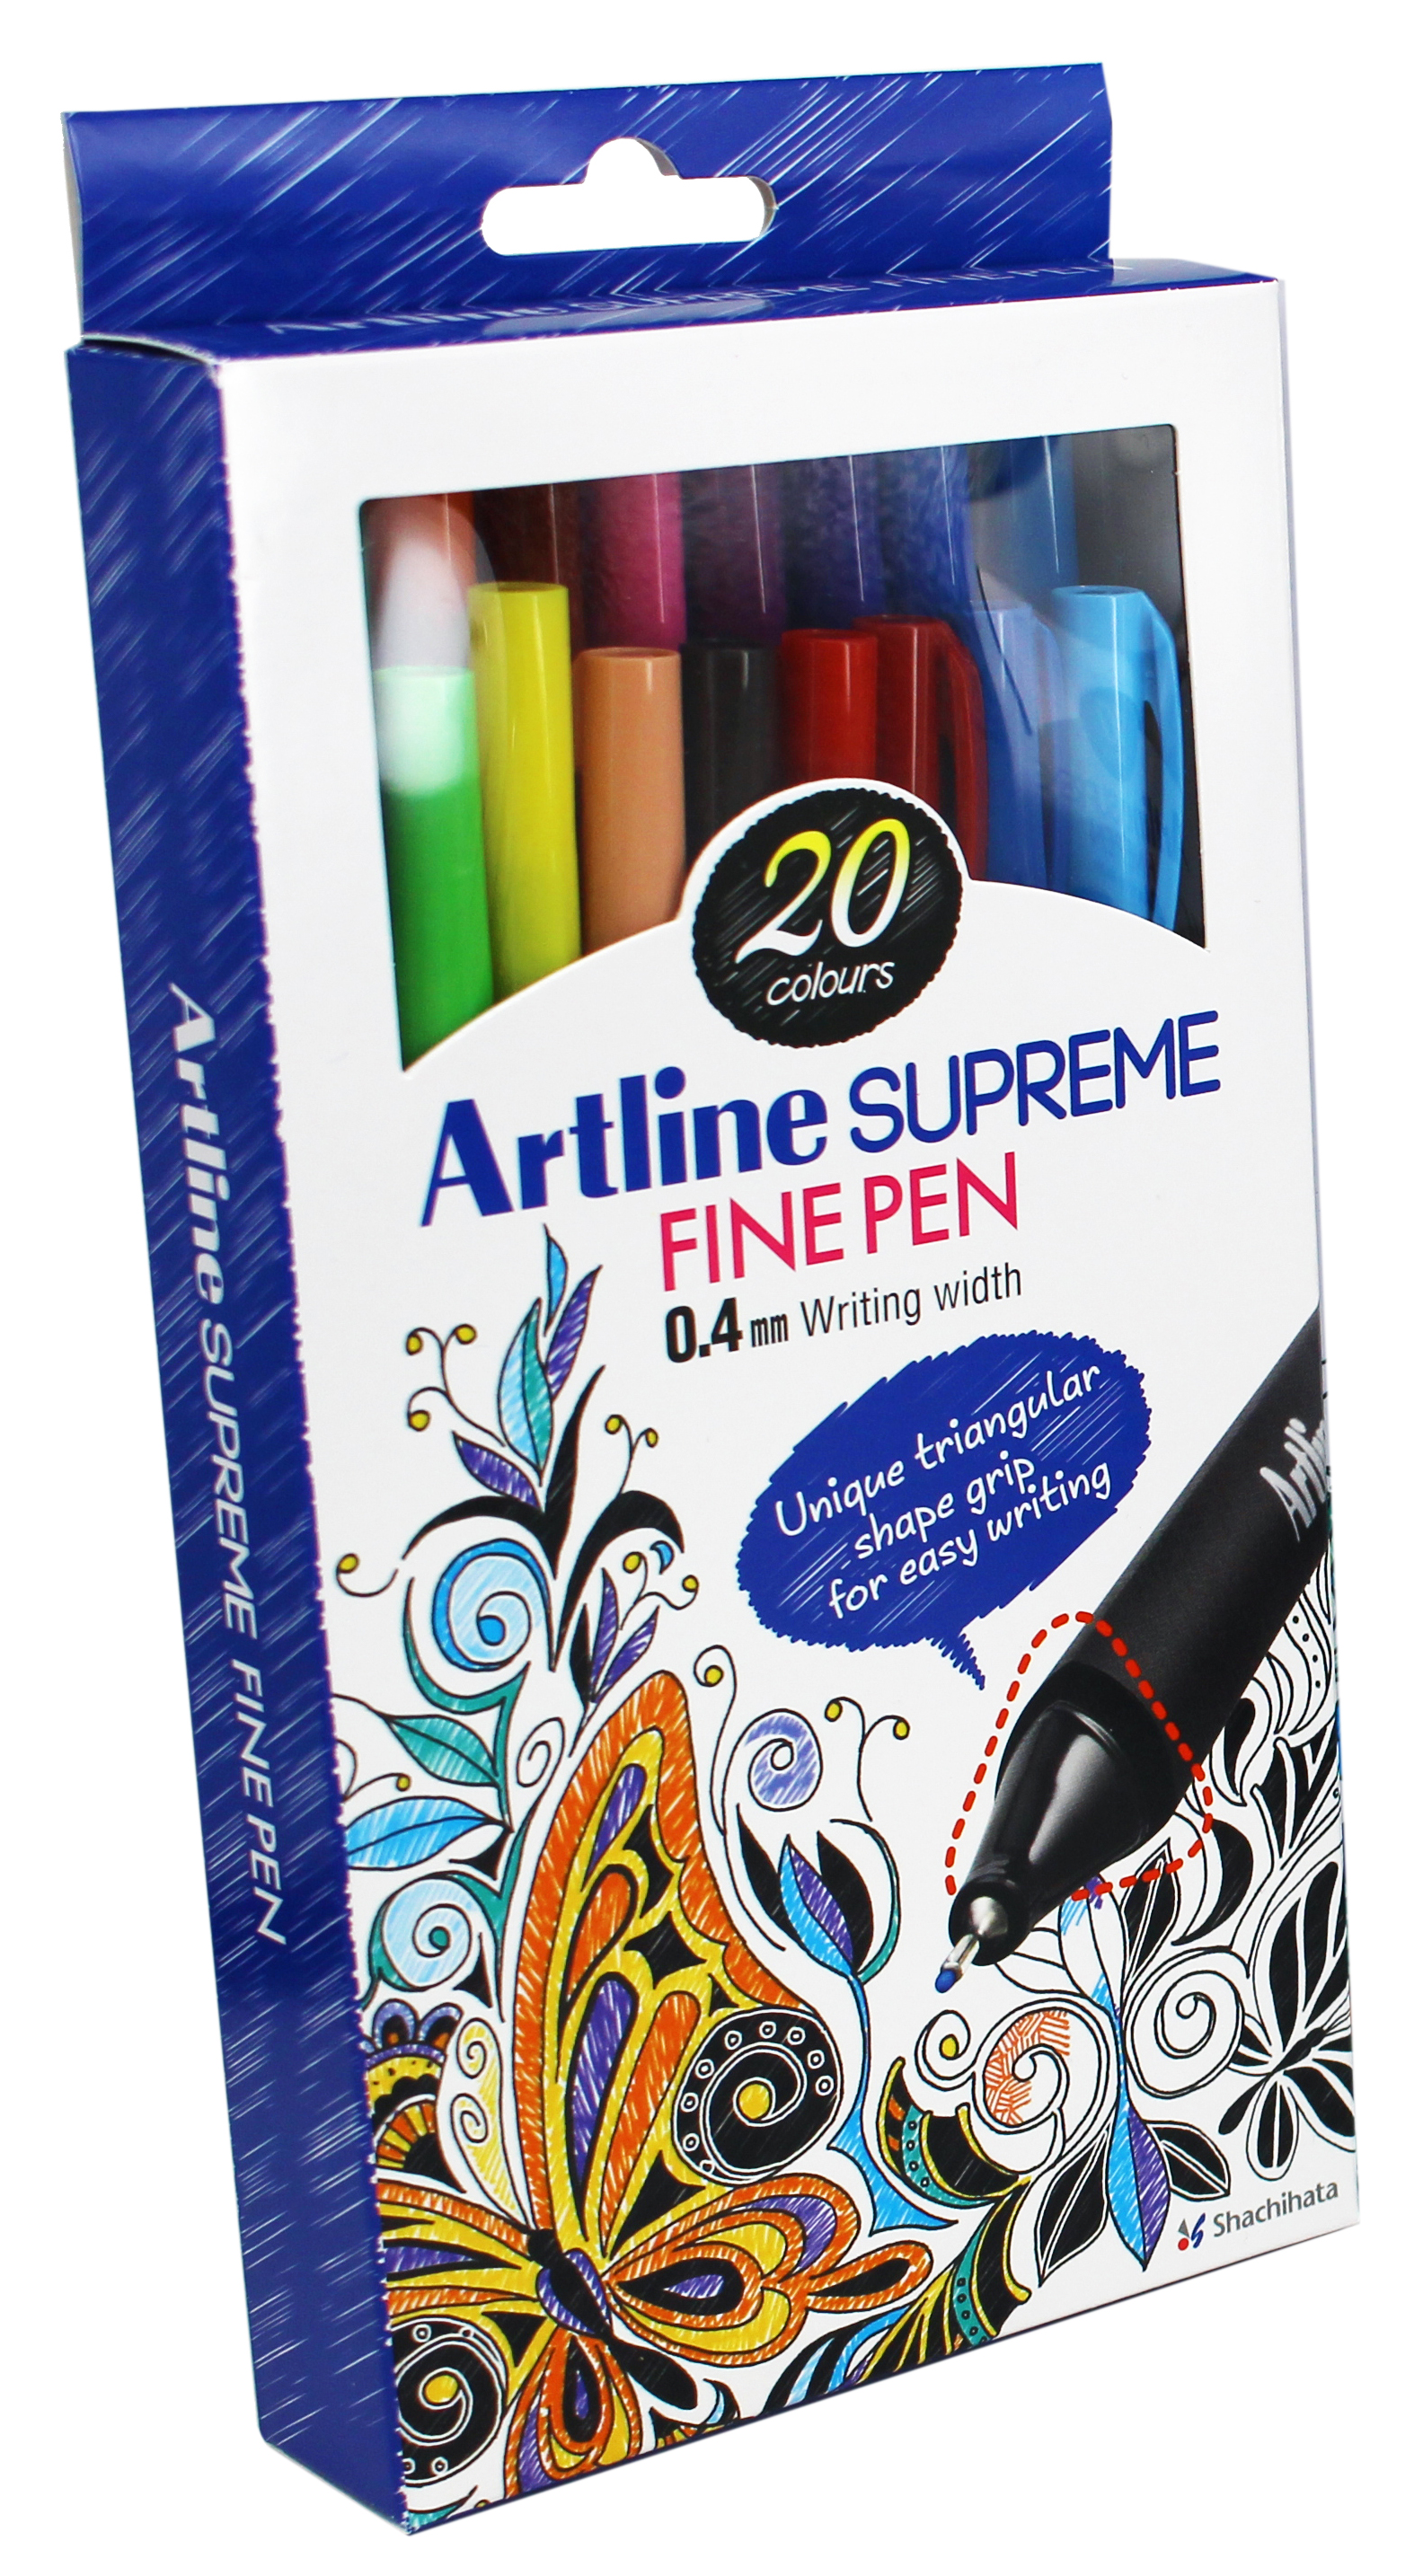 Liner ARTLINE Supreme, varf fetru 0.4mm, 10 culori/set